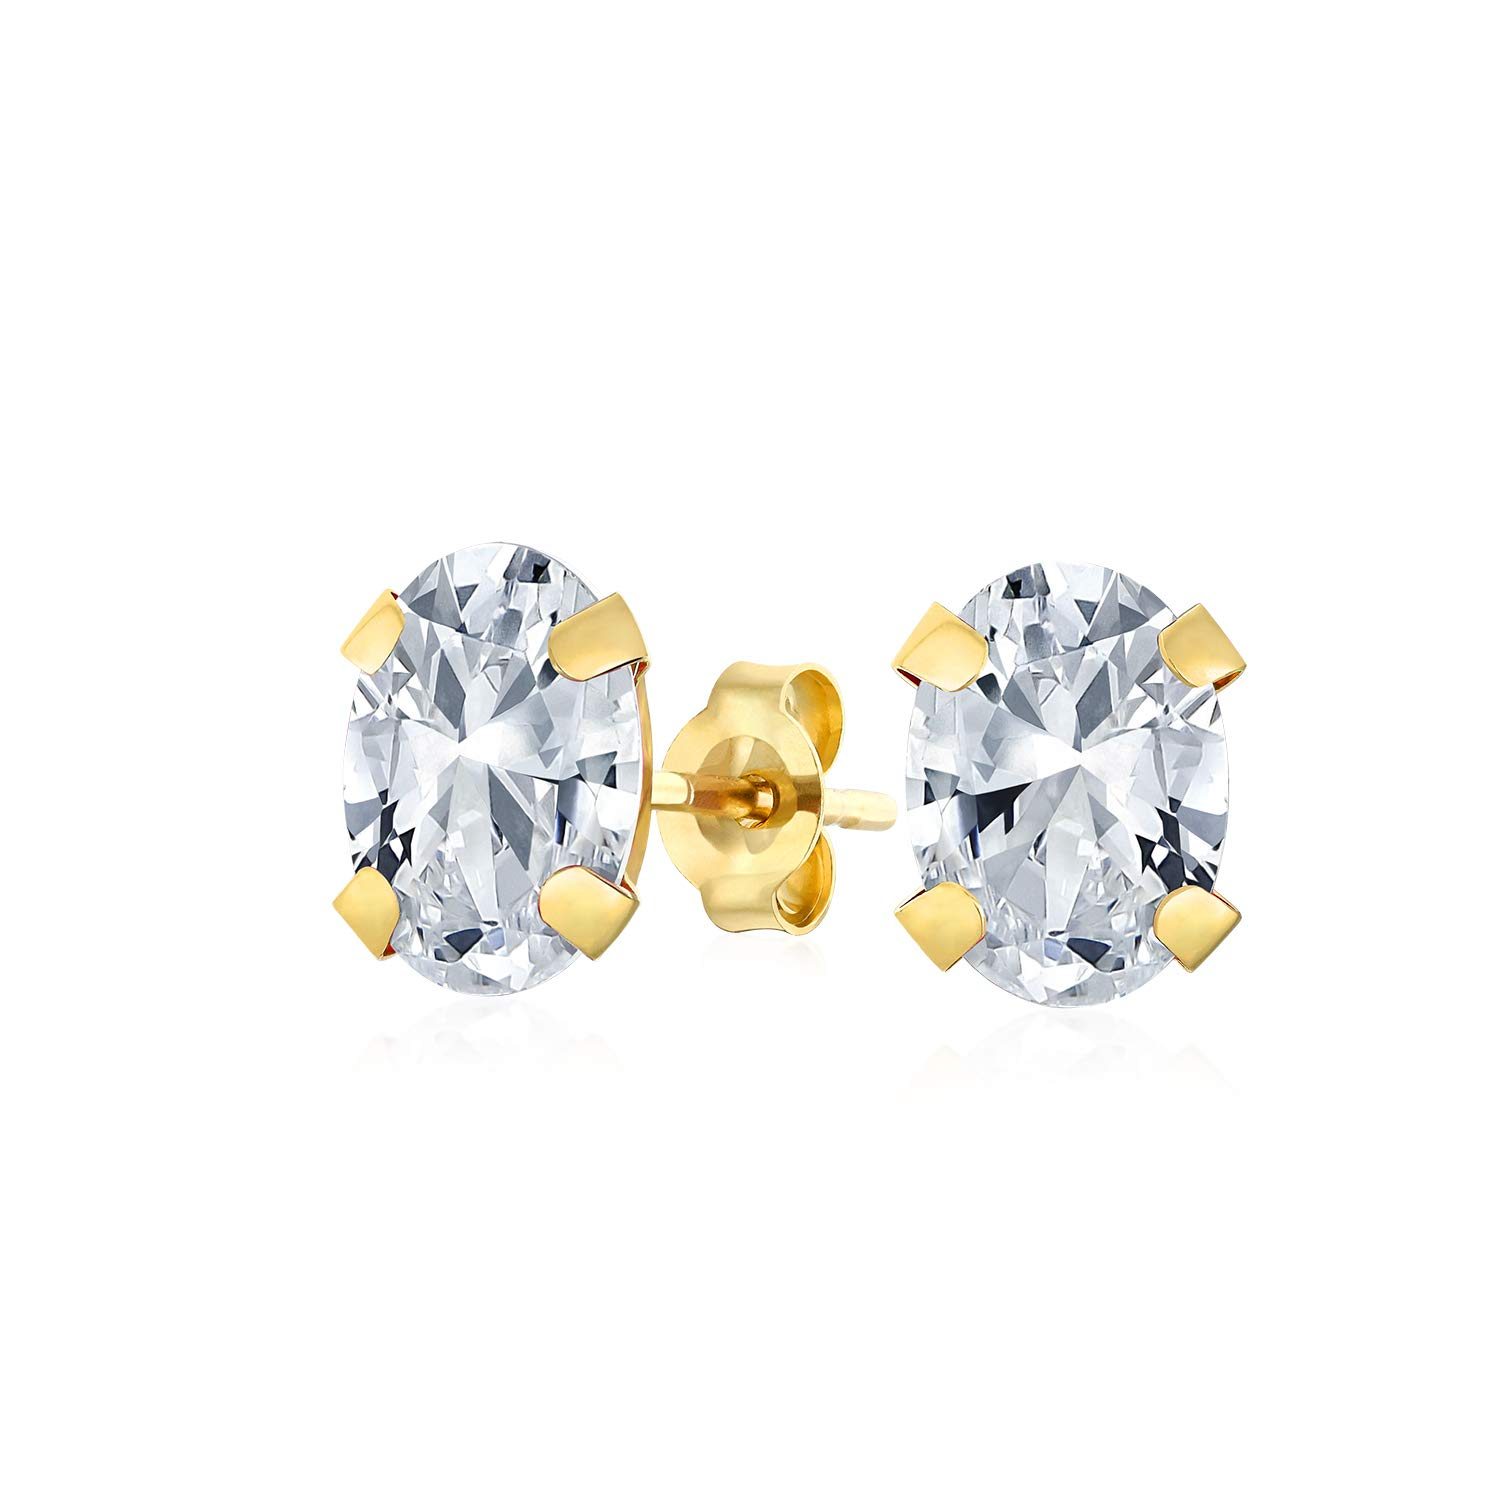 1.6CT Oval Created or Genuine Gemstone Stud Earrings For Women Teen 14K Yellow Real Gold 7x5 MM More Birthstone Colors